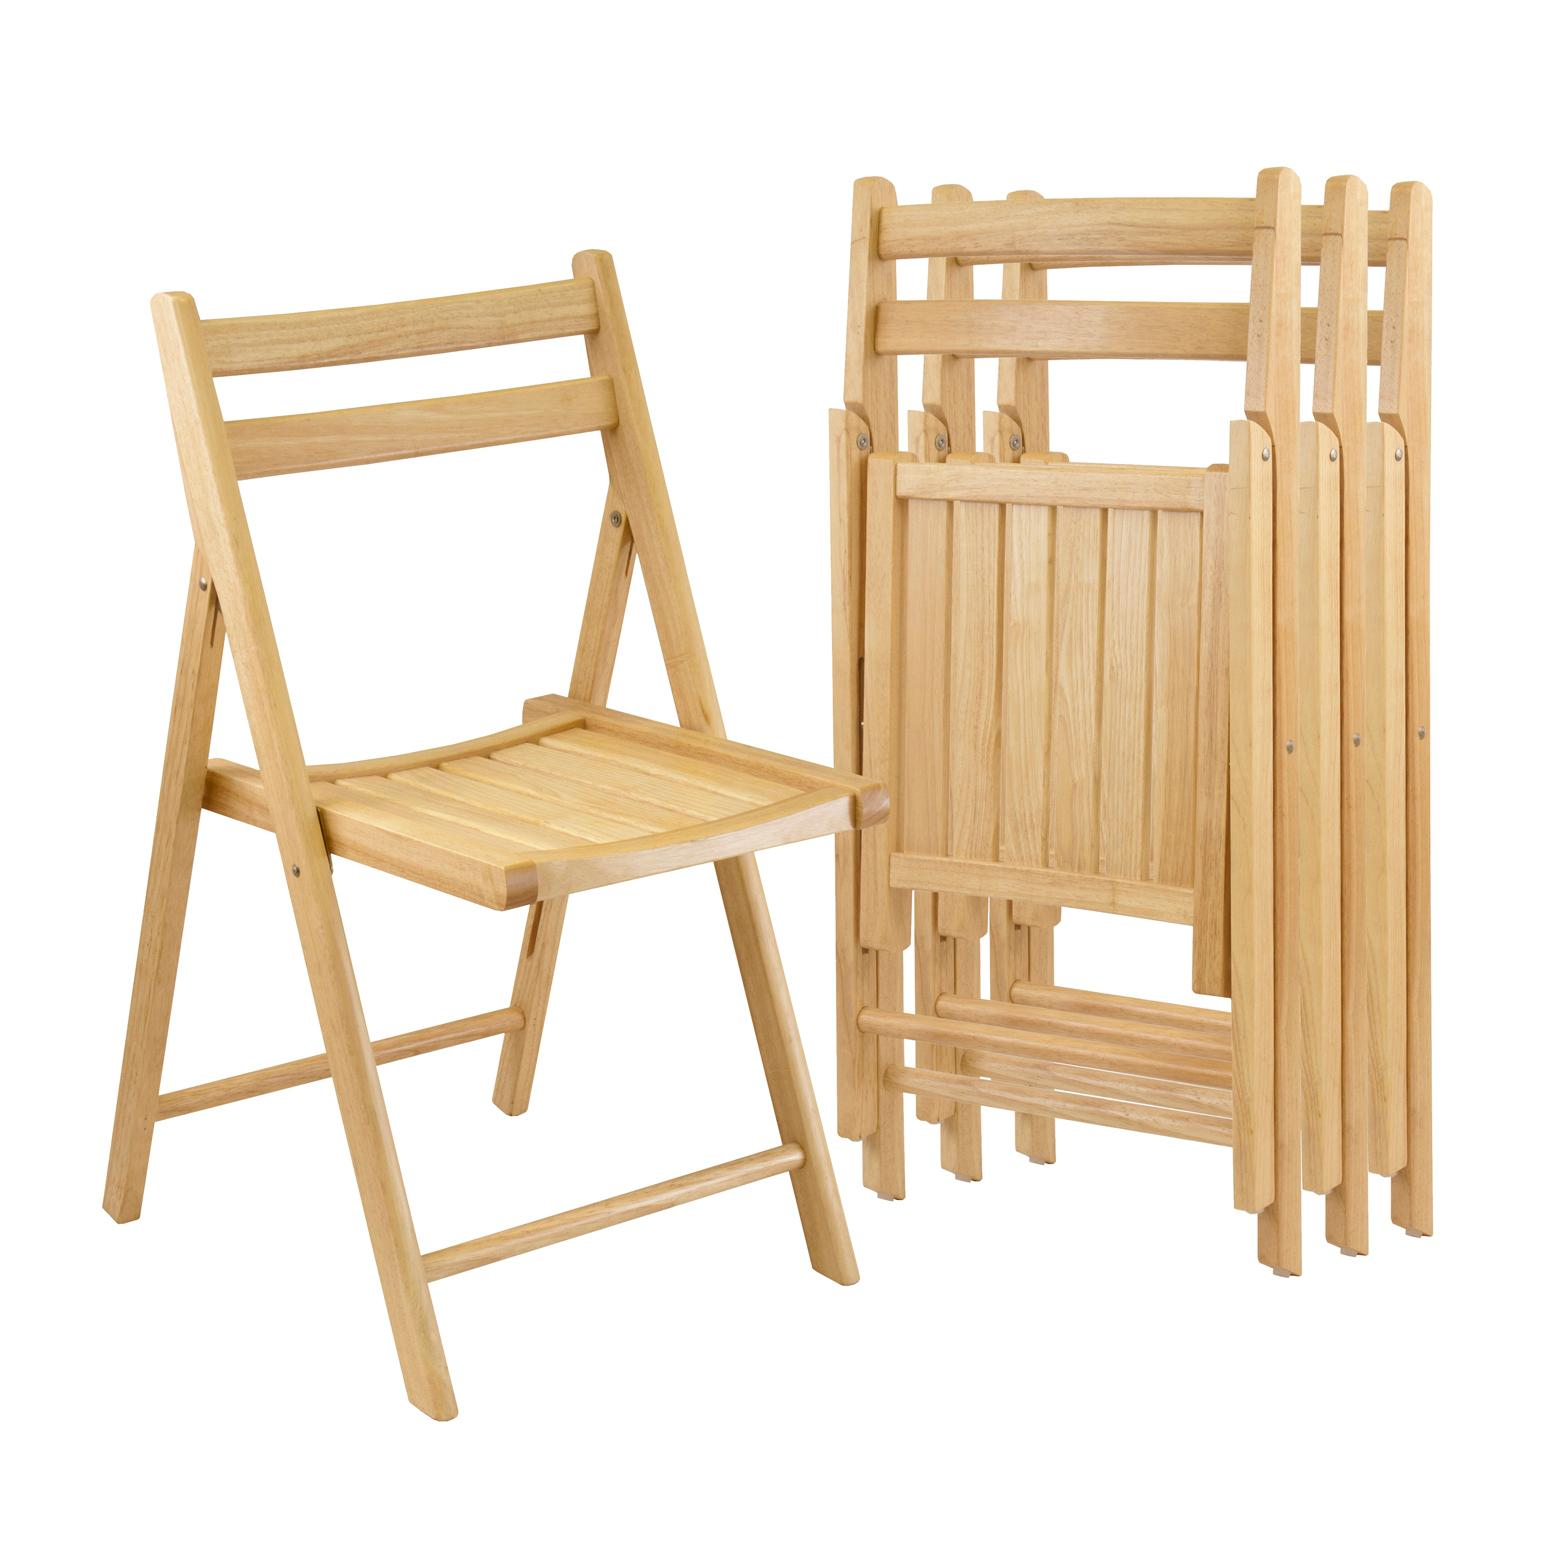 Winsome Wood Folding Chairs Natural Finish Set Of 4 Chairs